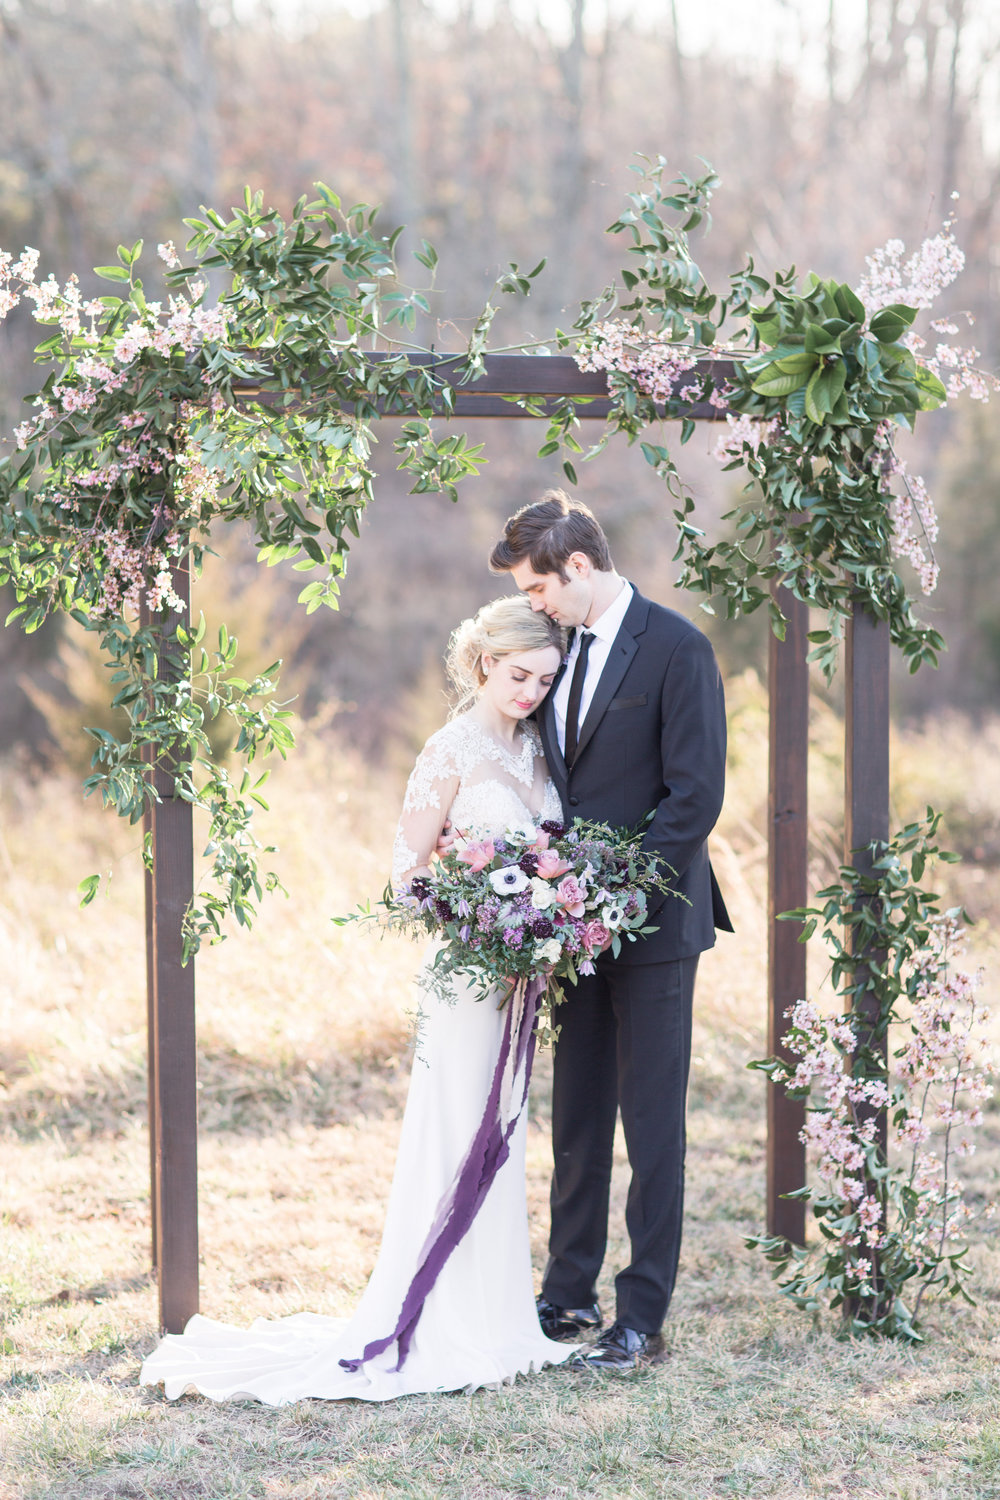 Wedding arch with cherry blossoms by Lark Floral, Leesburg, VA florist